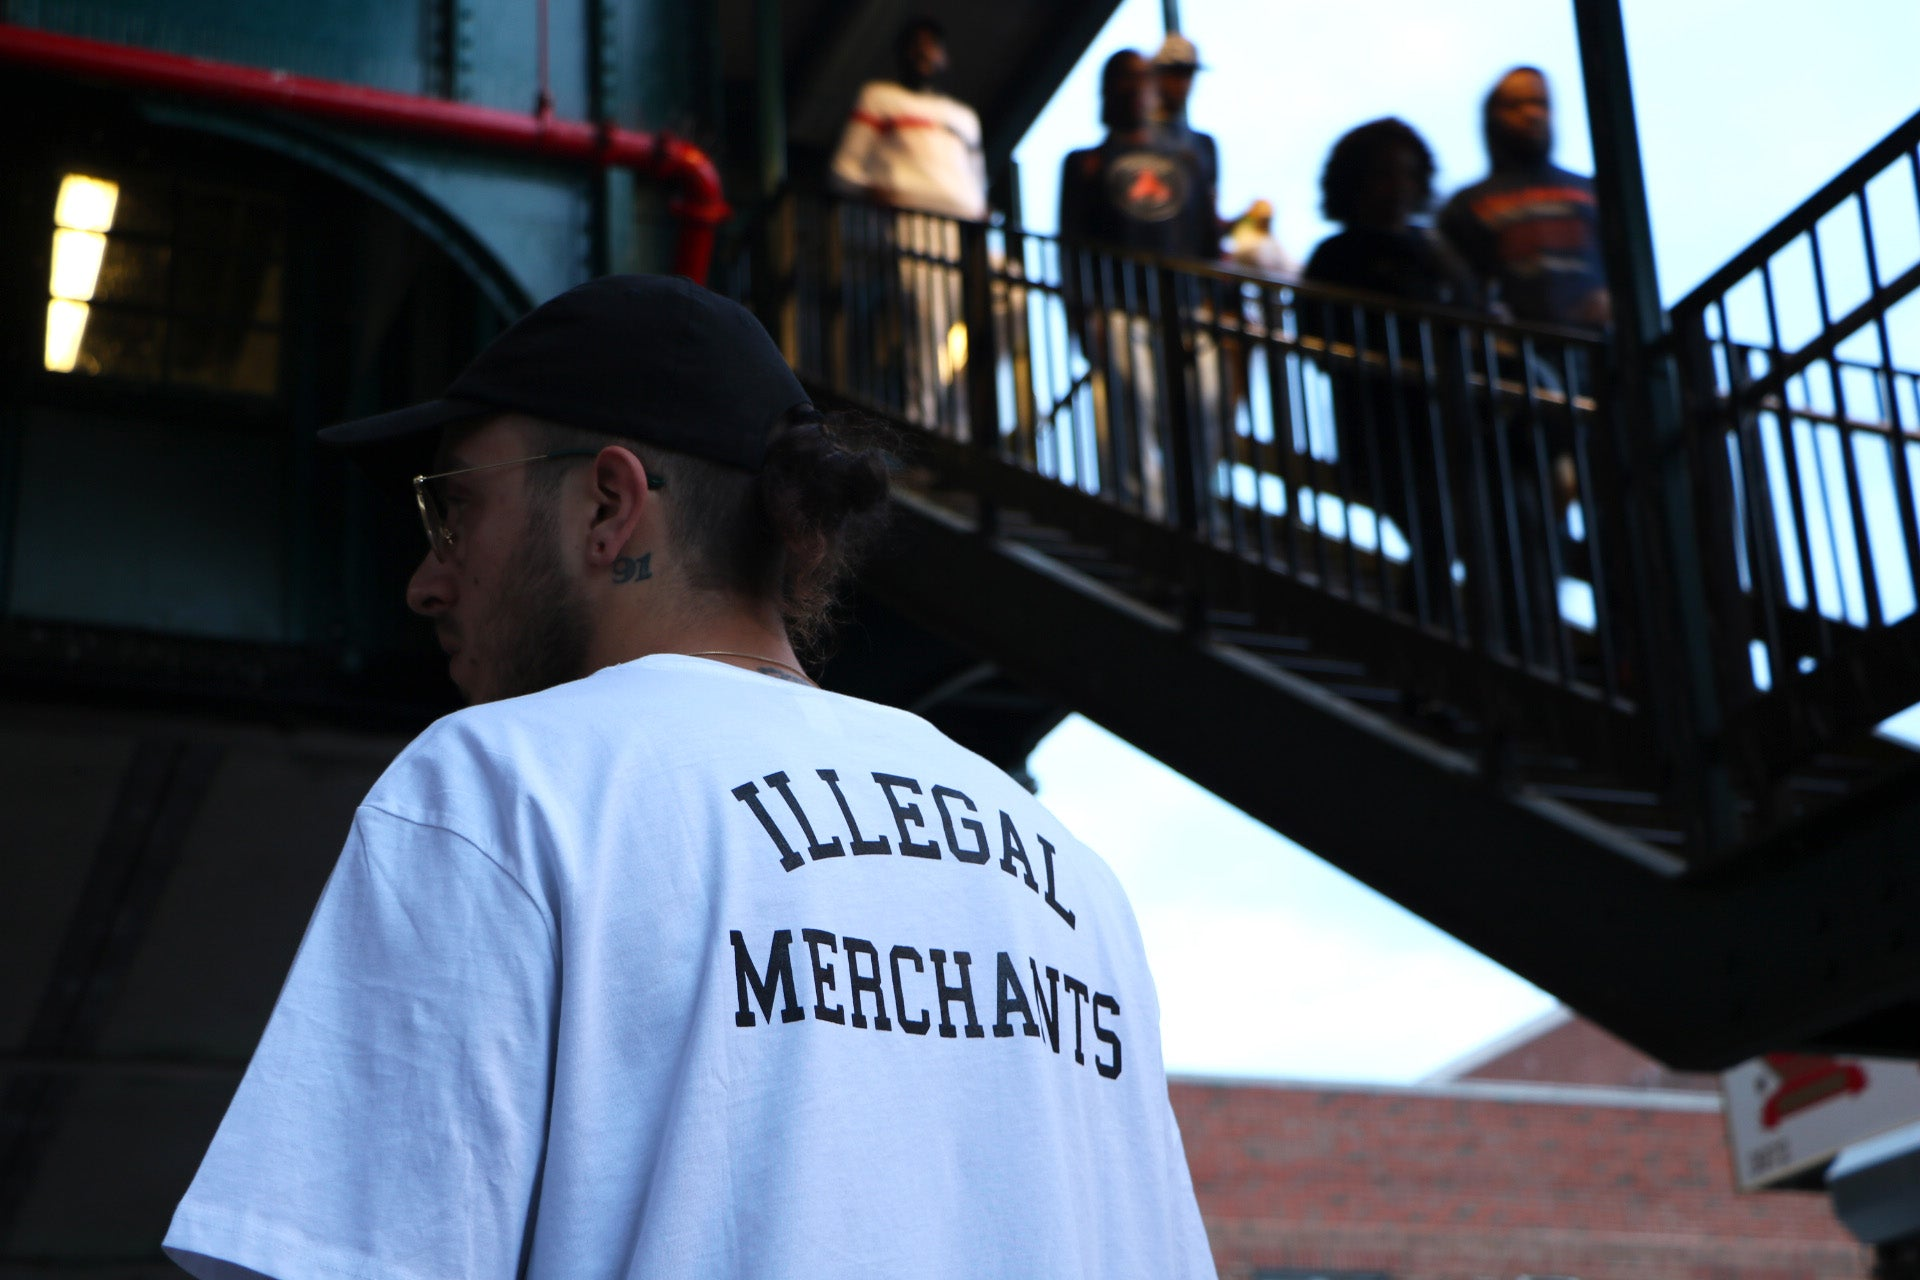 ILLEGAL MERCHANTS BACK TEE V4NY BRONX NY